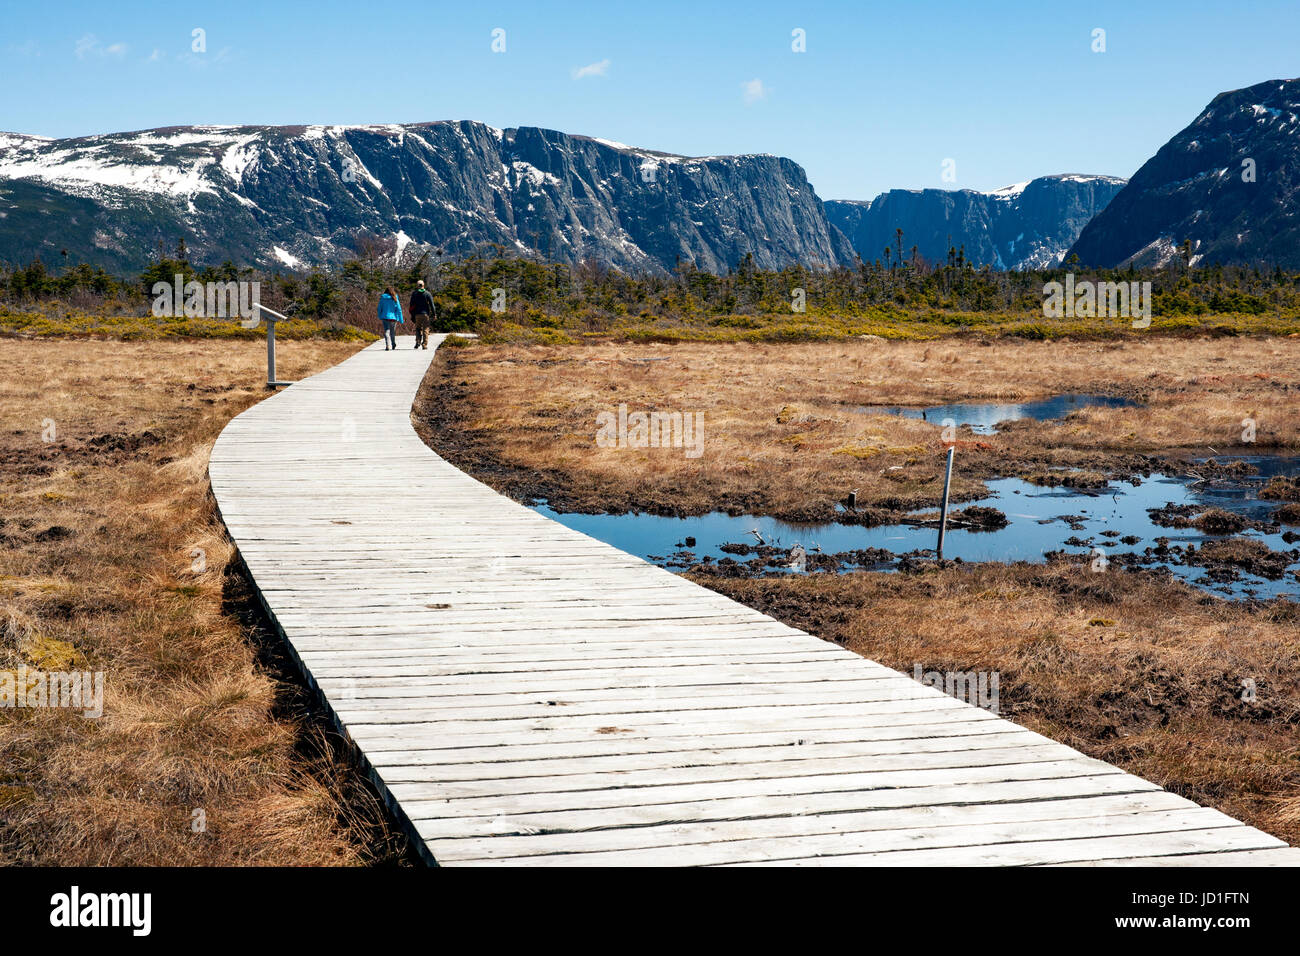 Trail to Western Brook Pond, Gros Morne National Park, Newfoundland, Canada - Stock Image